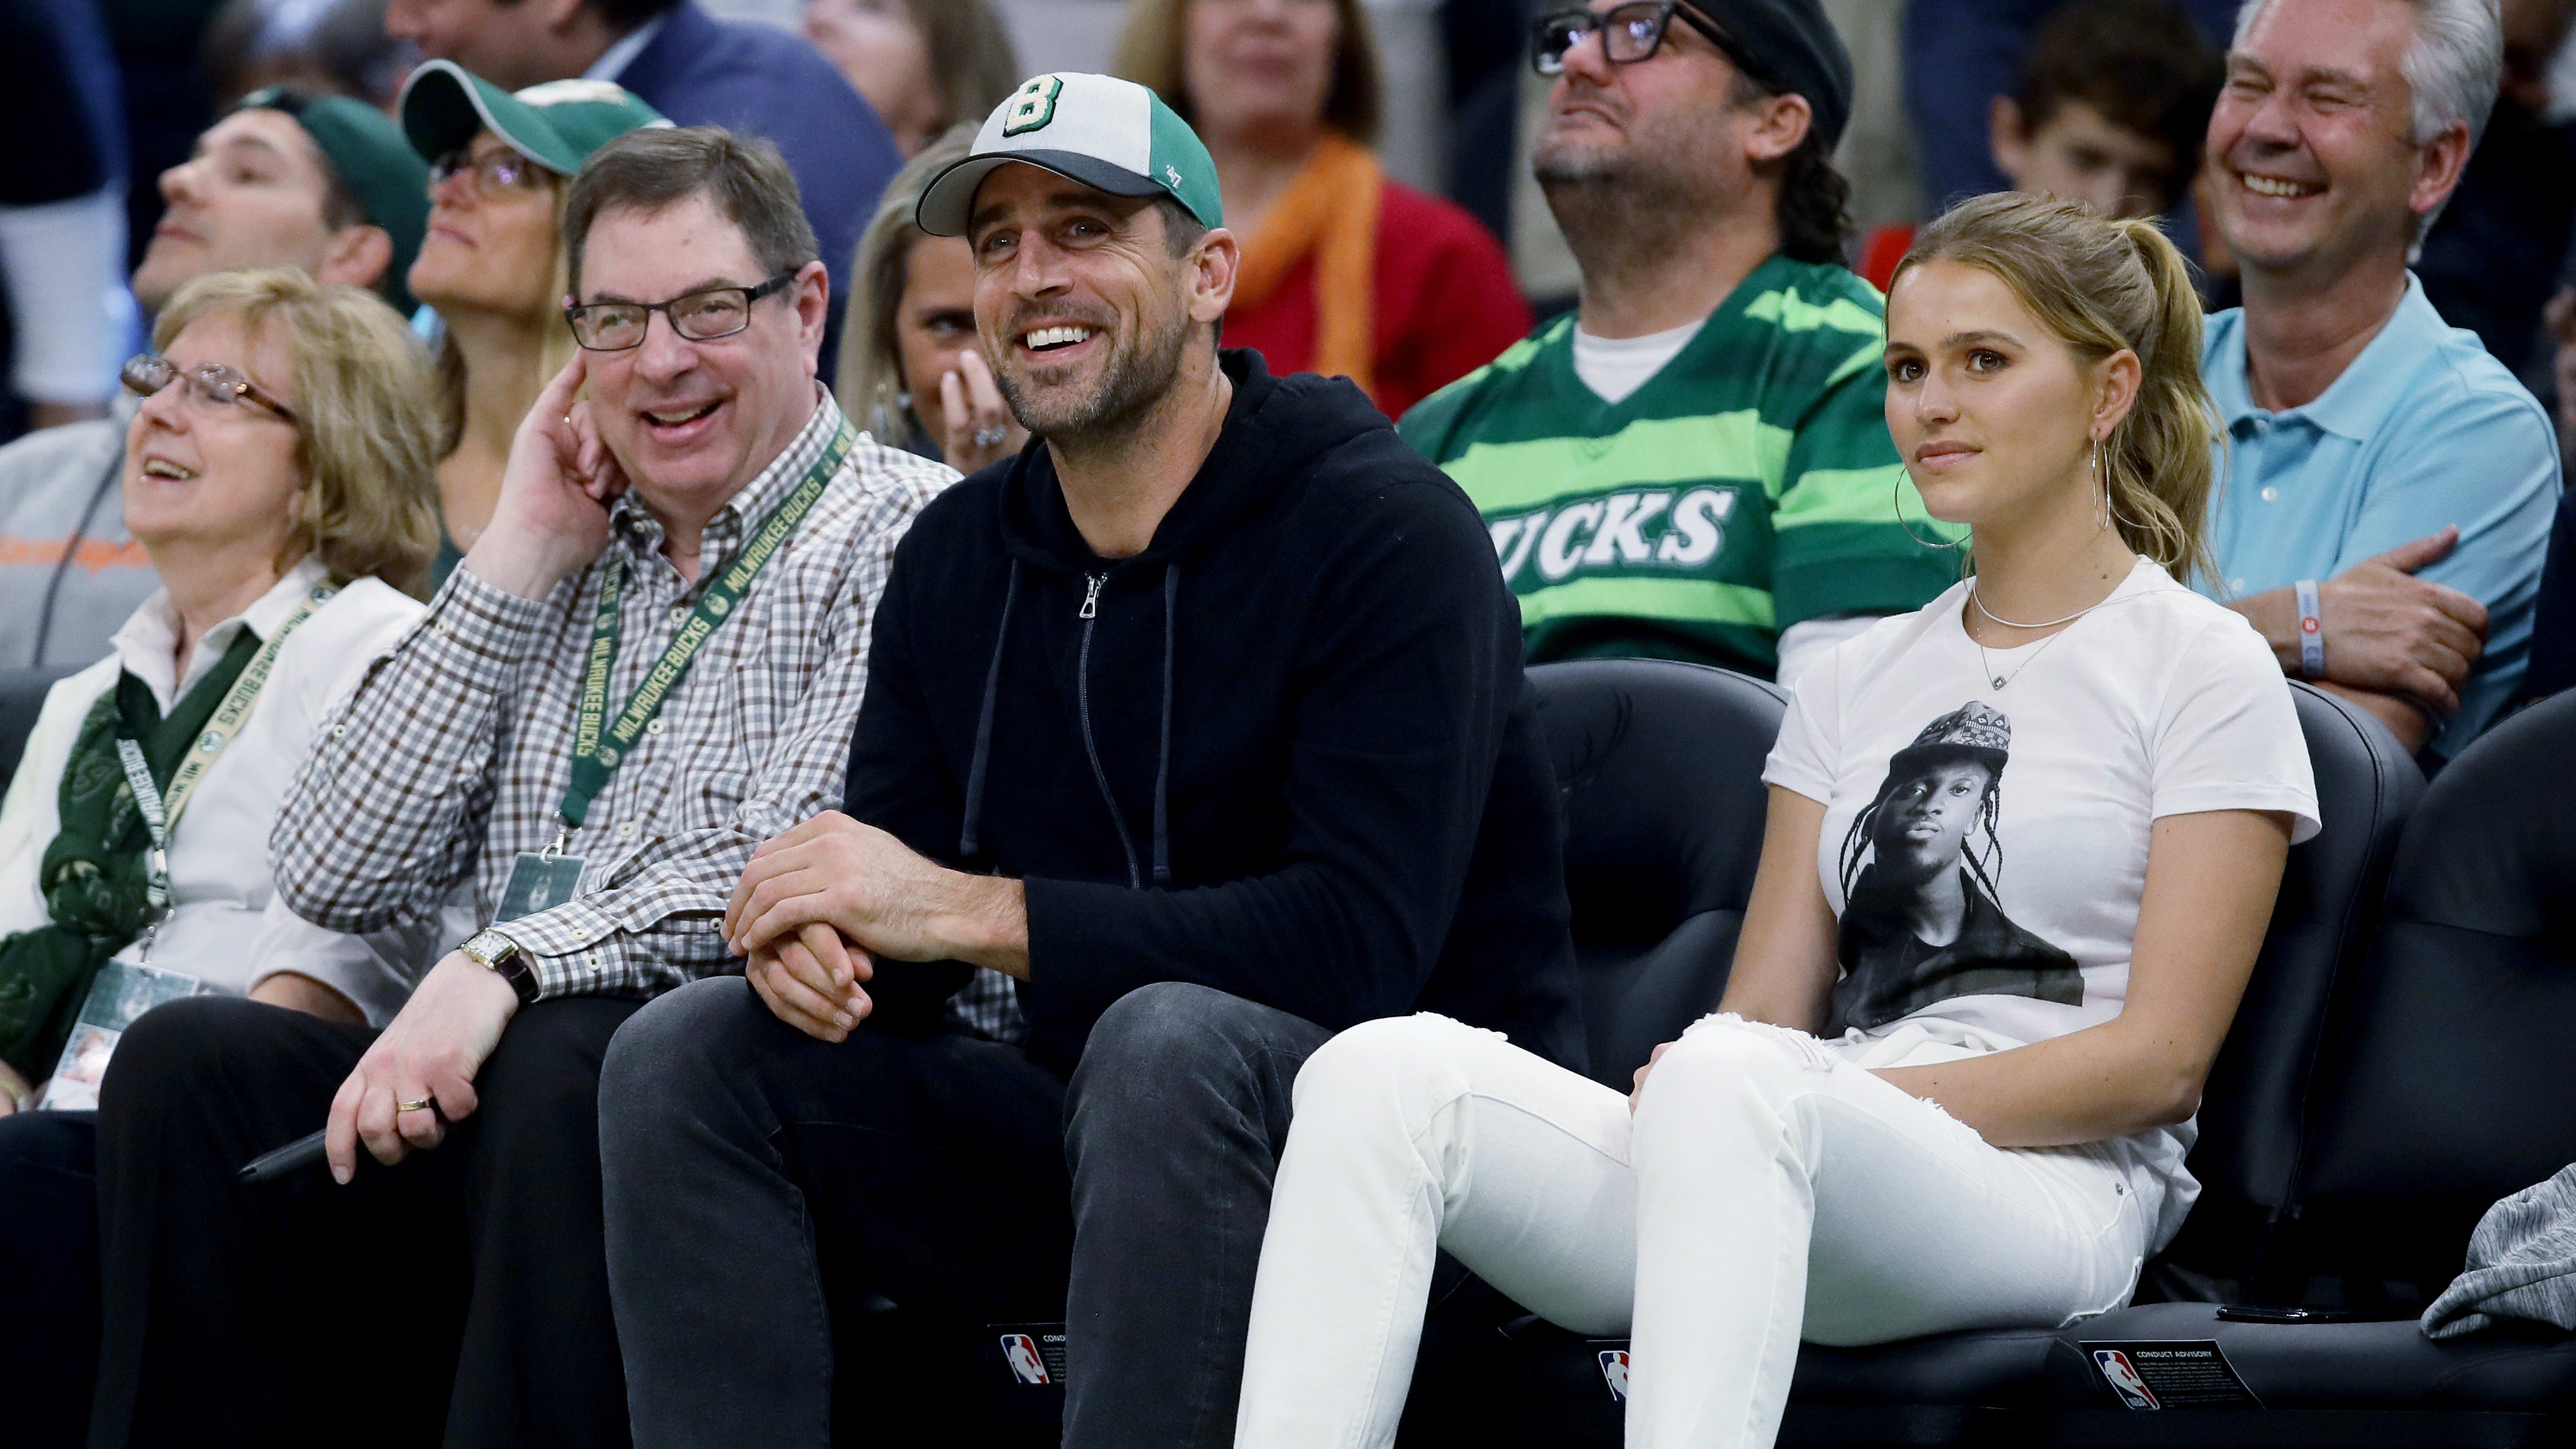 MILWAUKEE, WISCONSIN - MAY 23:  Aaron Rodgers of the Green Bay Packers looks on during Game Five of the Eastern Conference Finals of the 2019 NBA Playoffs between the Toronto Raptors and Milwaukee Bucks at the Fiserv Forum on May 23, 2019 in Milwaukee, Wisconsin. NOTE TO USER: User expressly acknowledges and agrees that, by downloading and or using this photograph, User is consenting to the terms and conditions of the Getty Images License Agreement. (Photo by Jonathan Daniel/Getty Images)